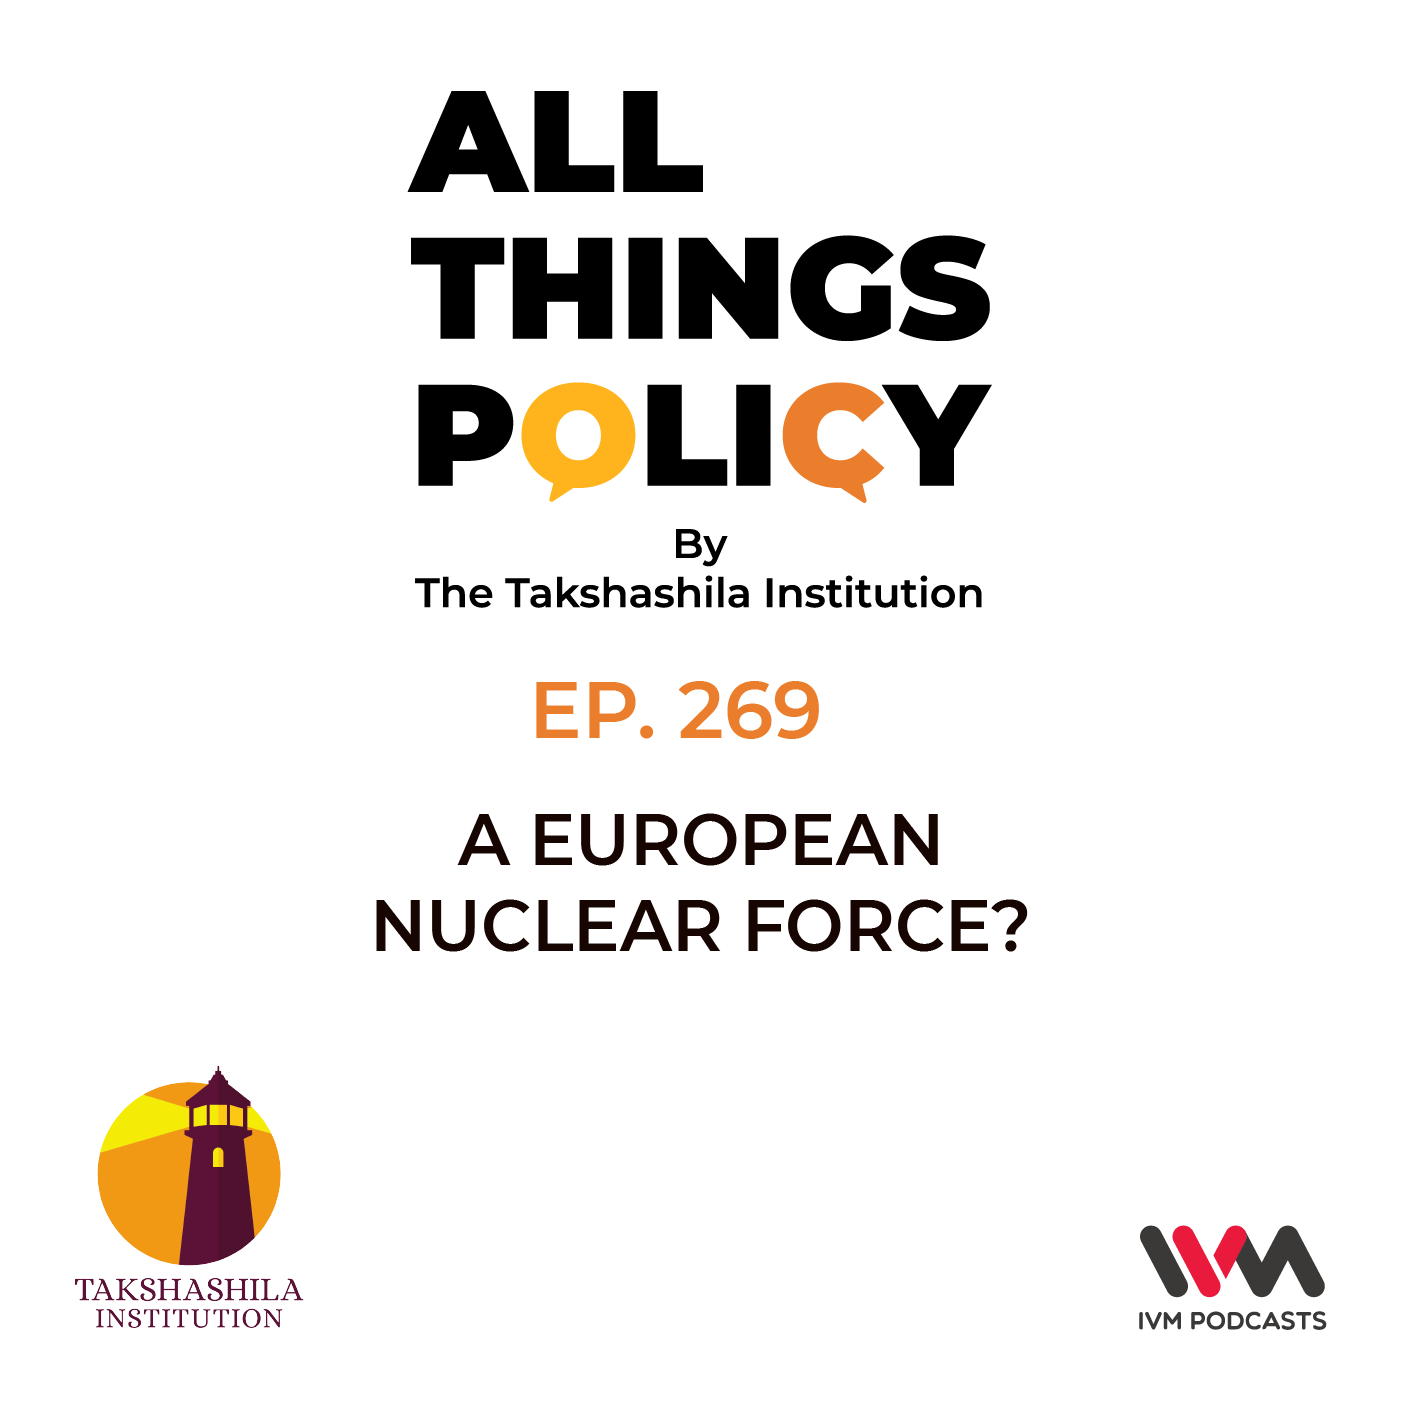 Ep. 269: A European Nuclear Force?